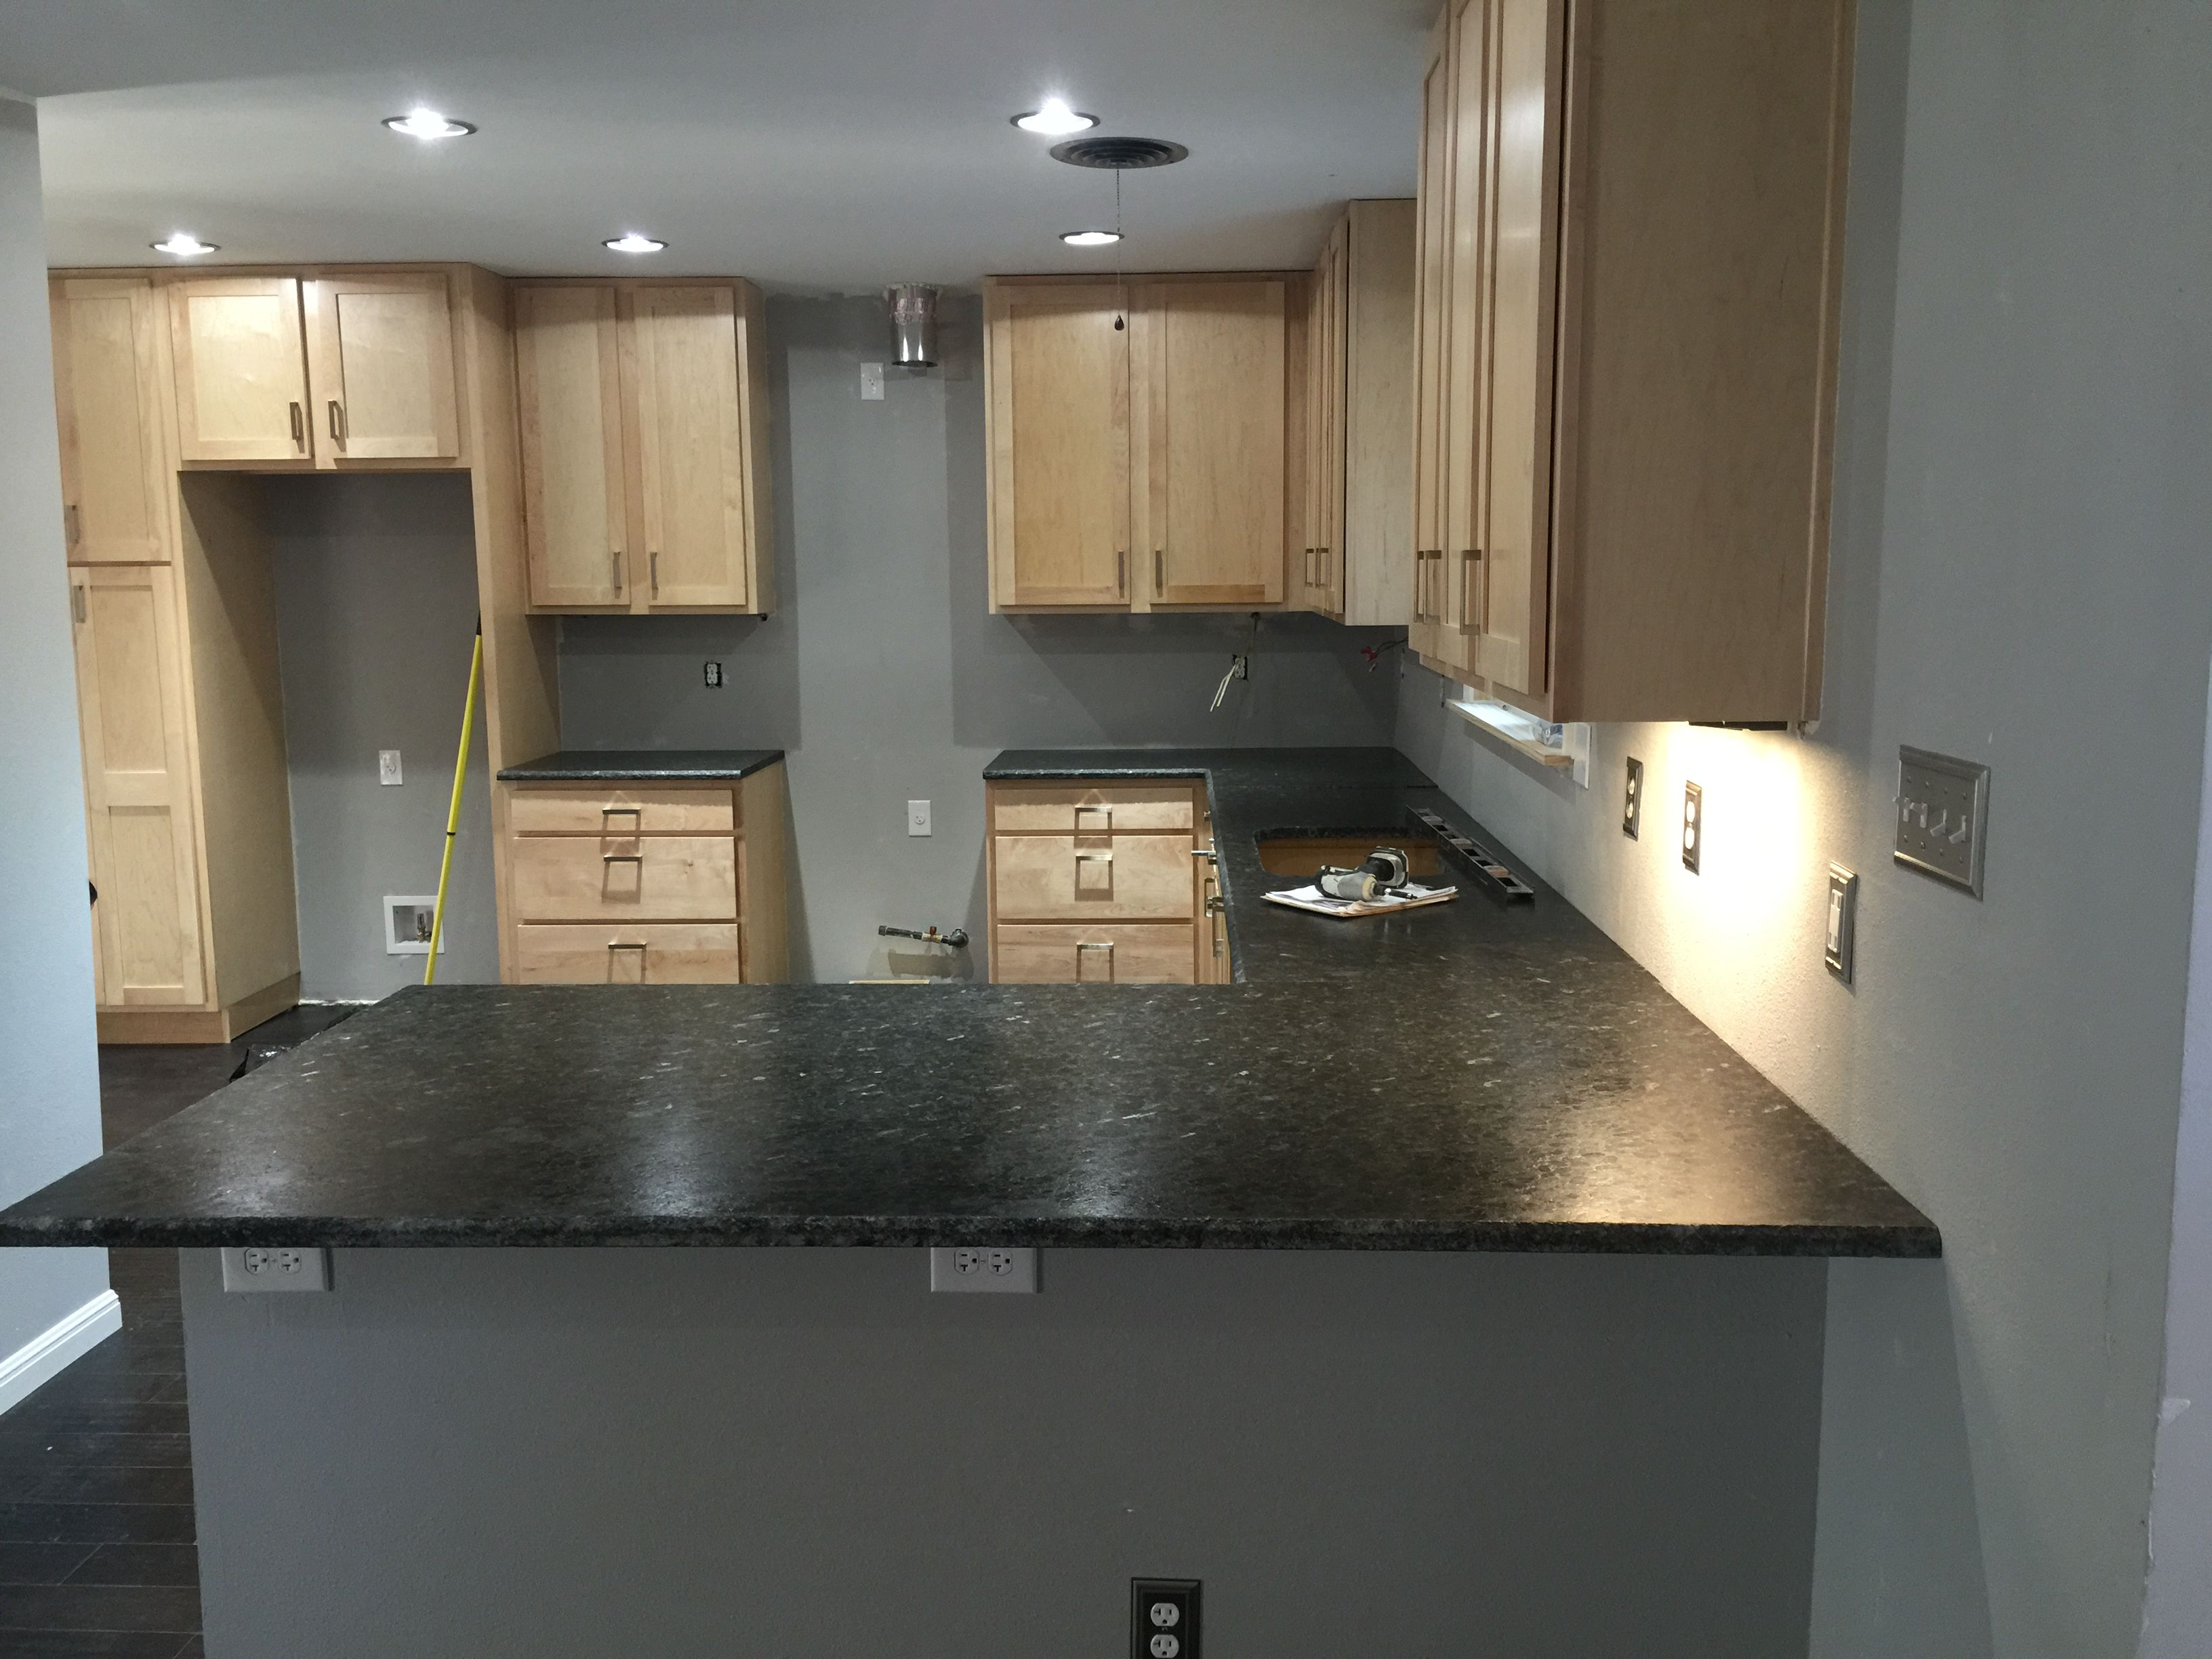 countertops for cost countertop worktop installed composite blue different installation granite pearl best by kitchen sale materials bathroom tops of material